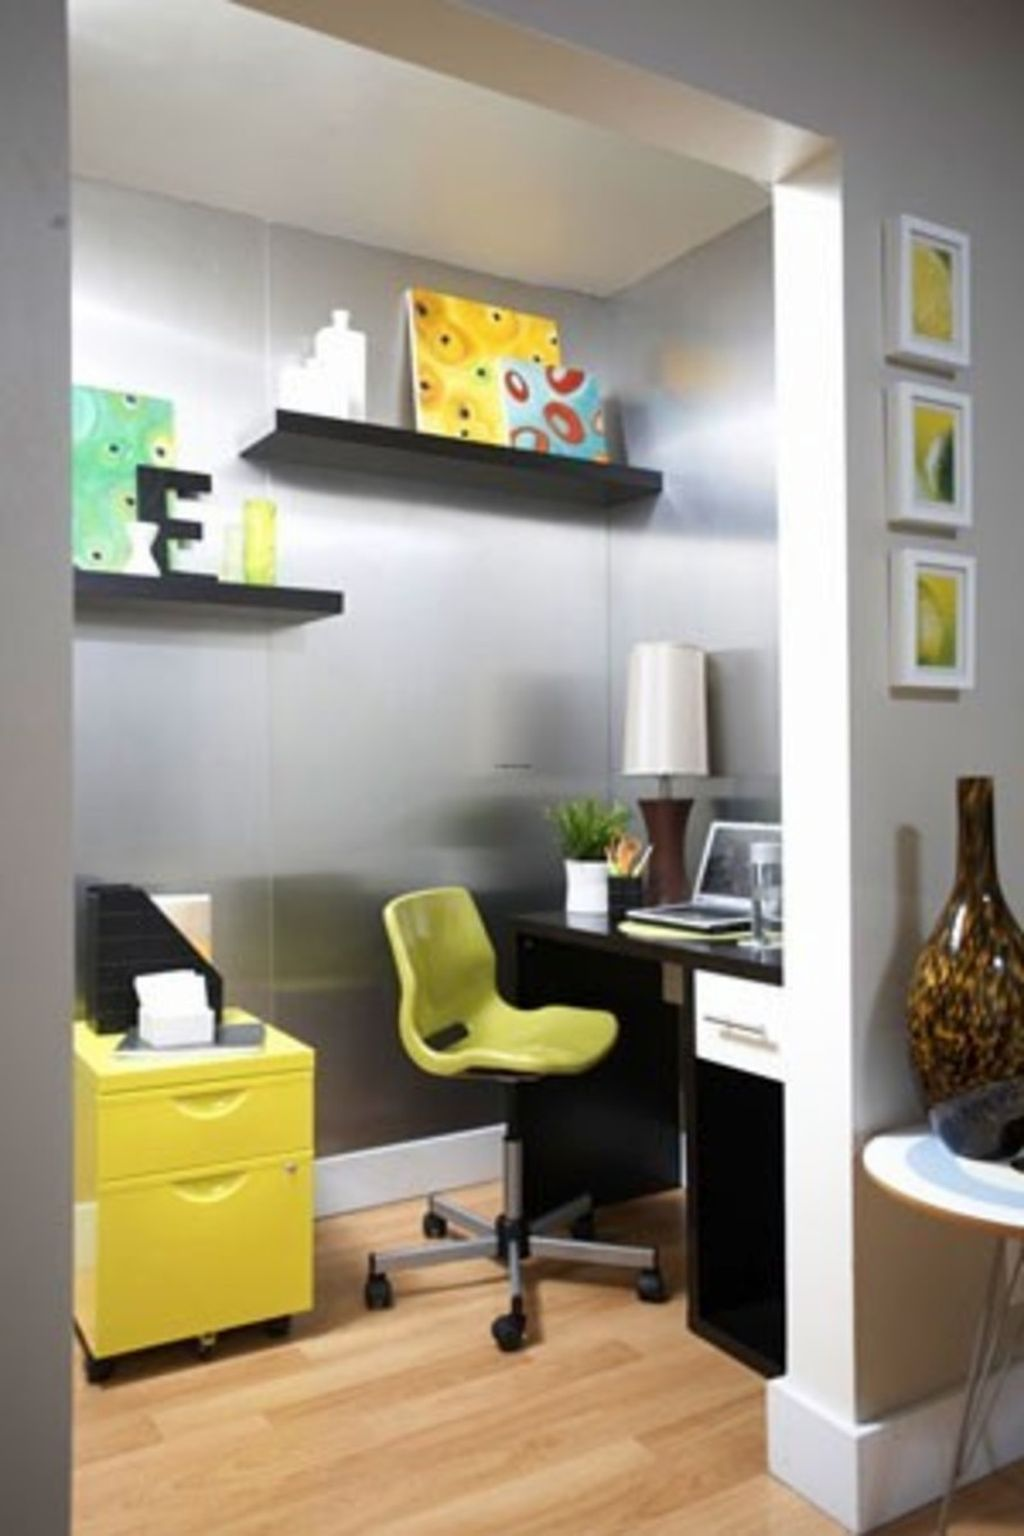 designs ideas wall design office. Designs Ideas Wall Design Office